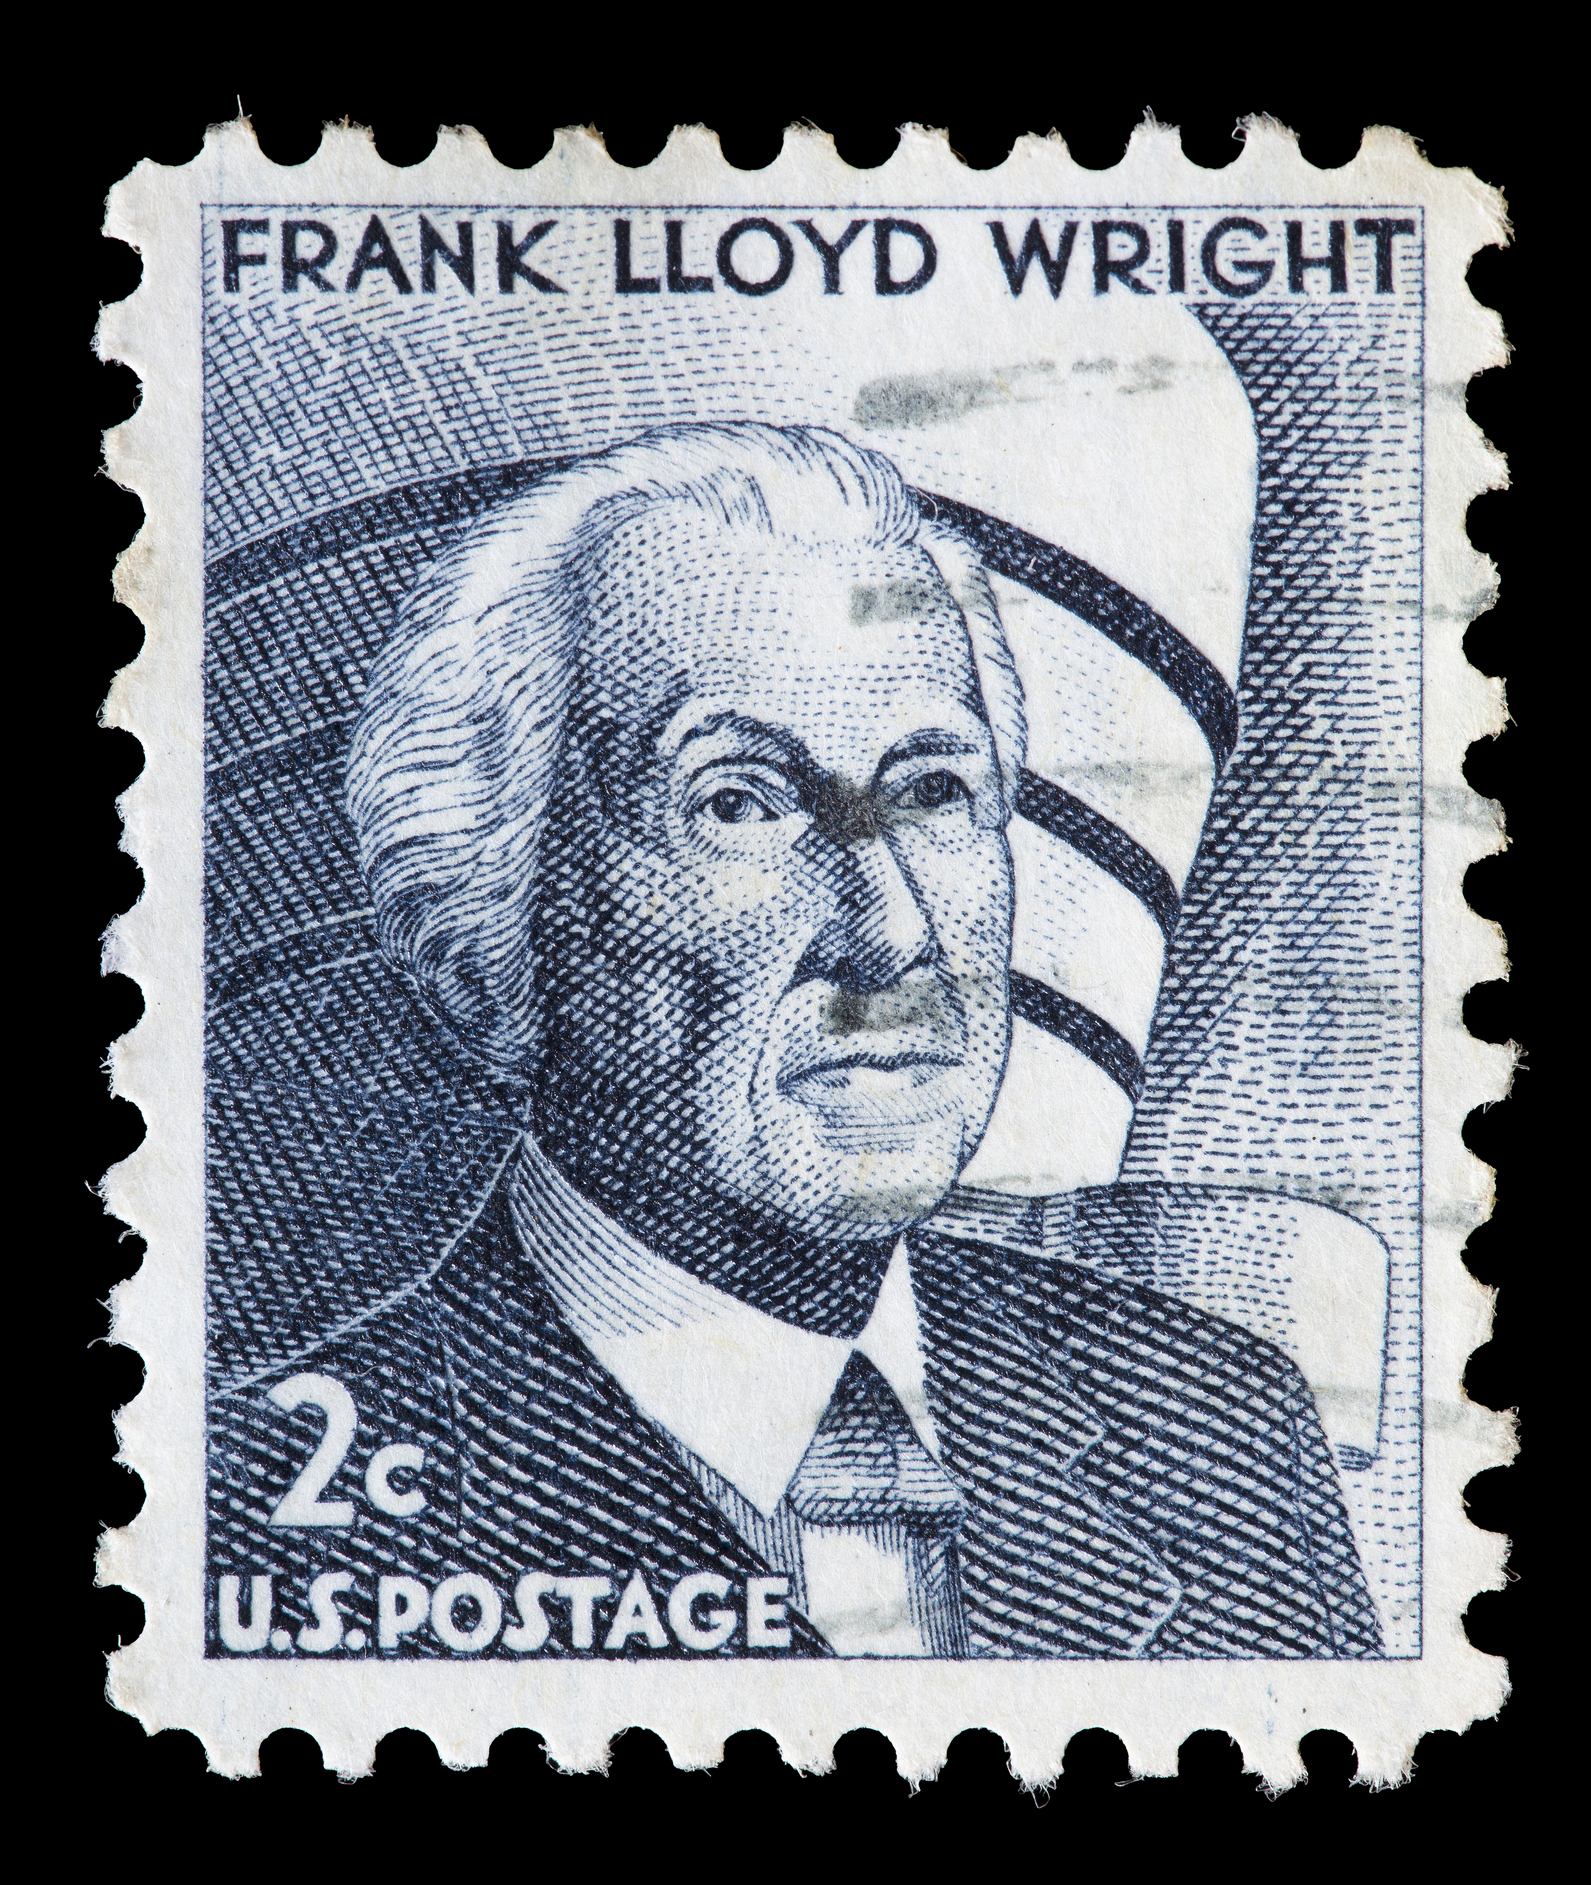 A stamp featuring Frank Lloyd Wright